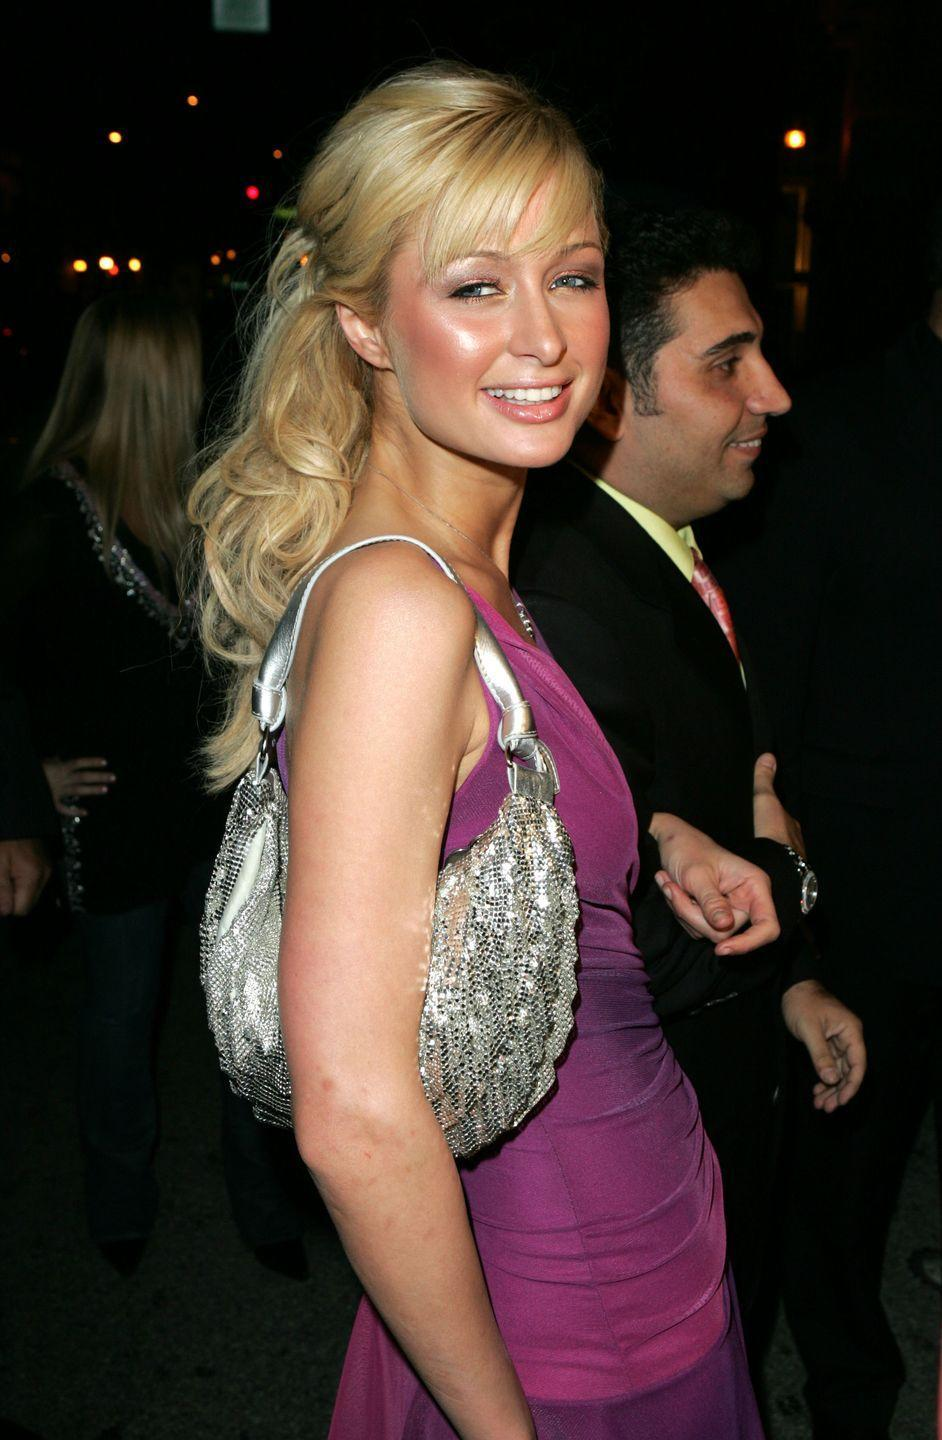 """<p>The year 2004 was a simpler time, when everything was bedazzled in sequins. It was basically the material everyone—including Paris Hilton—gravitated toward when picking their """"going out"""" ensemble for the night. </p>"""